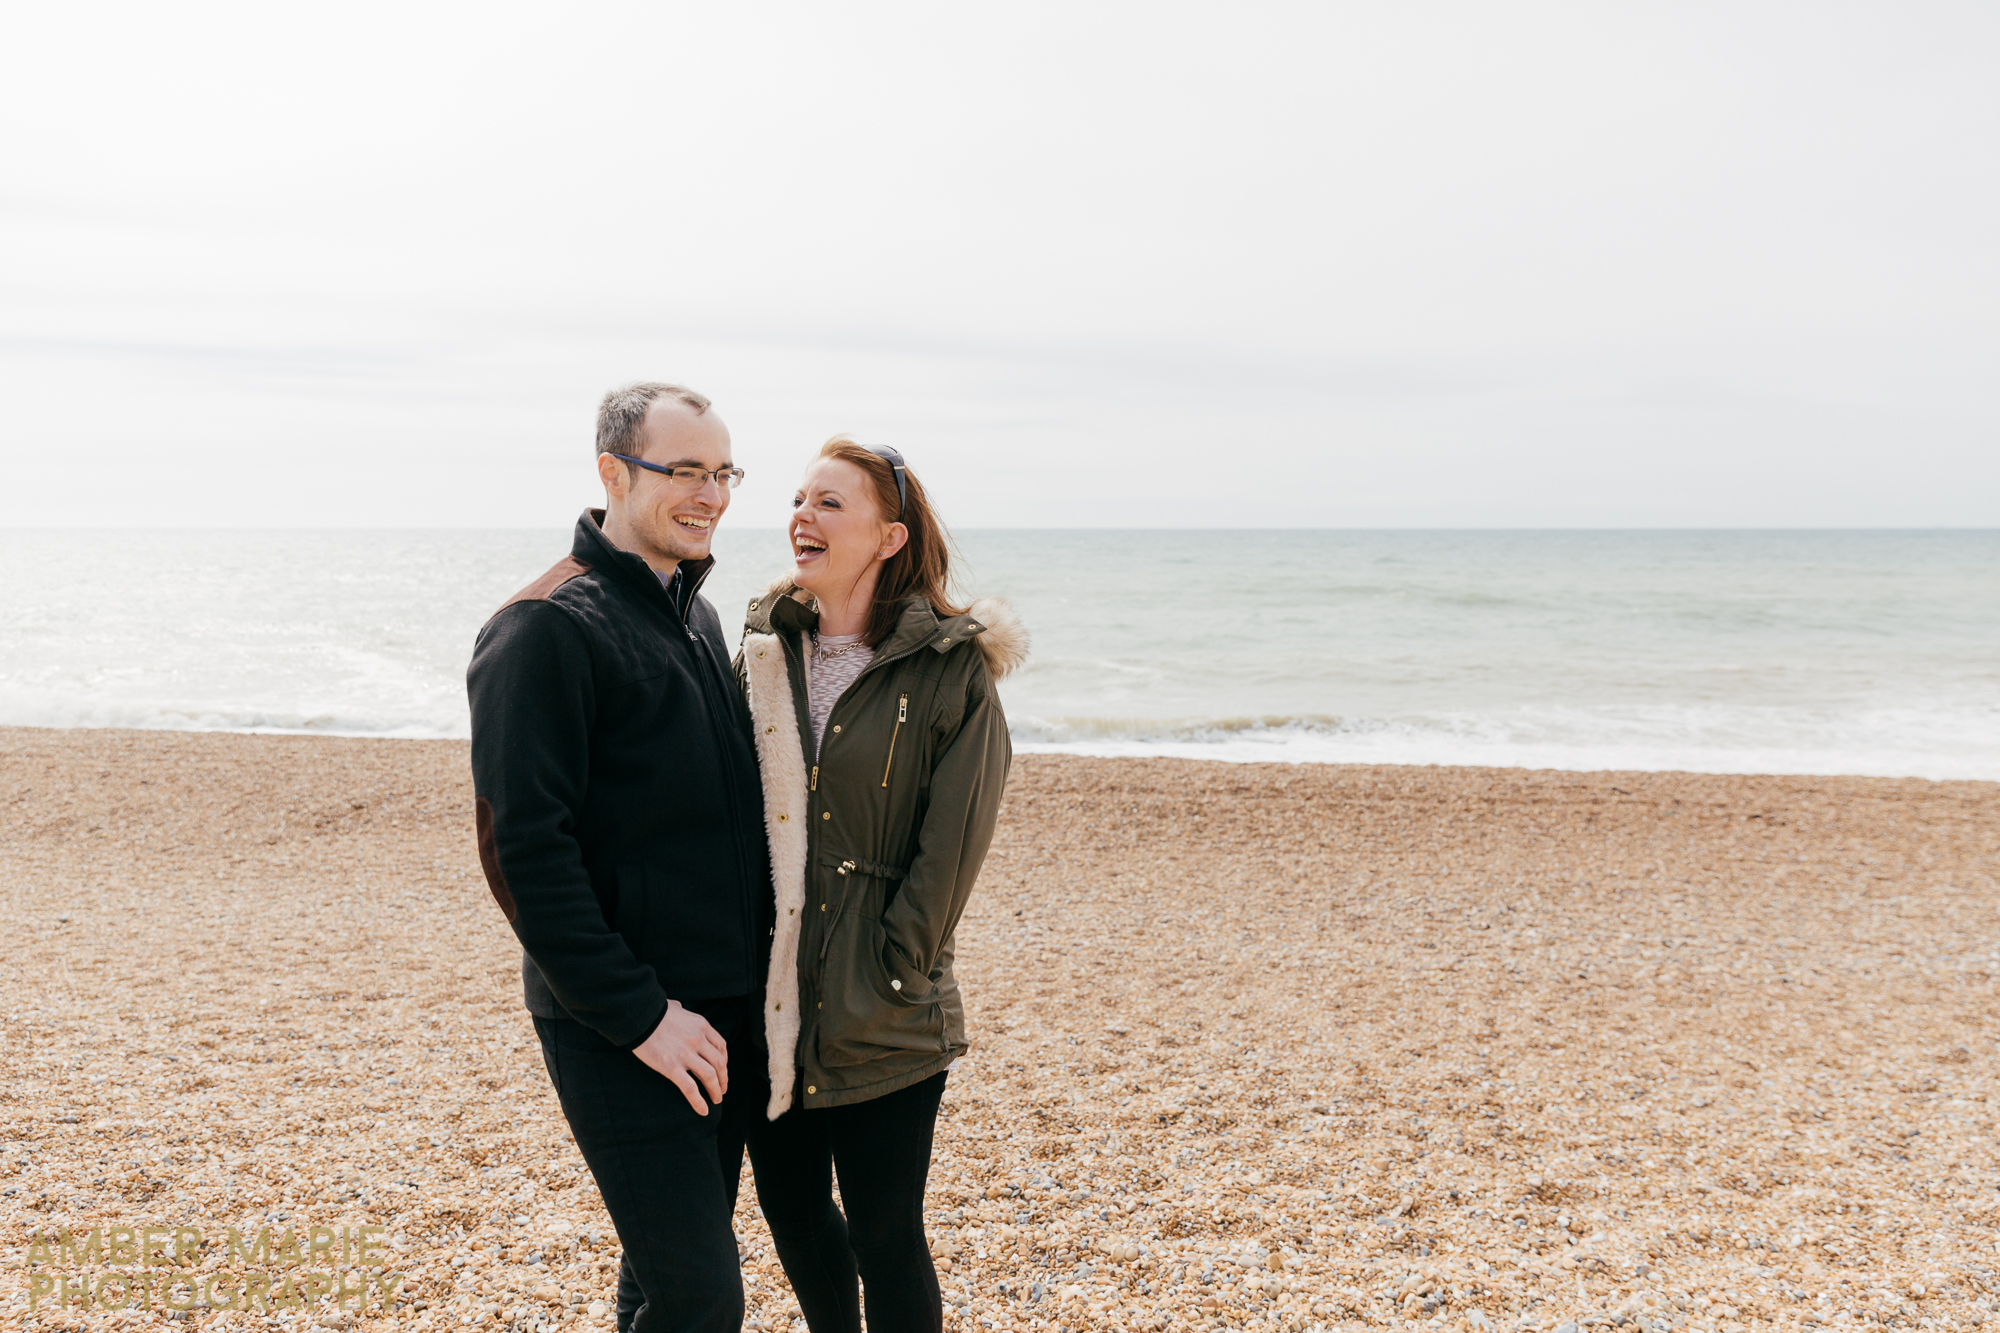 Creative, natural and relaxed wedding photography